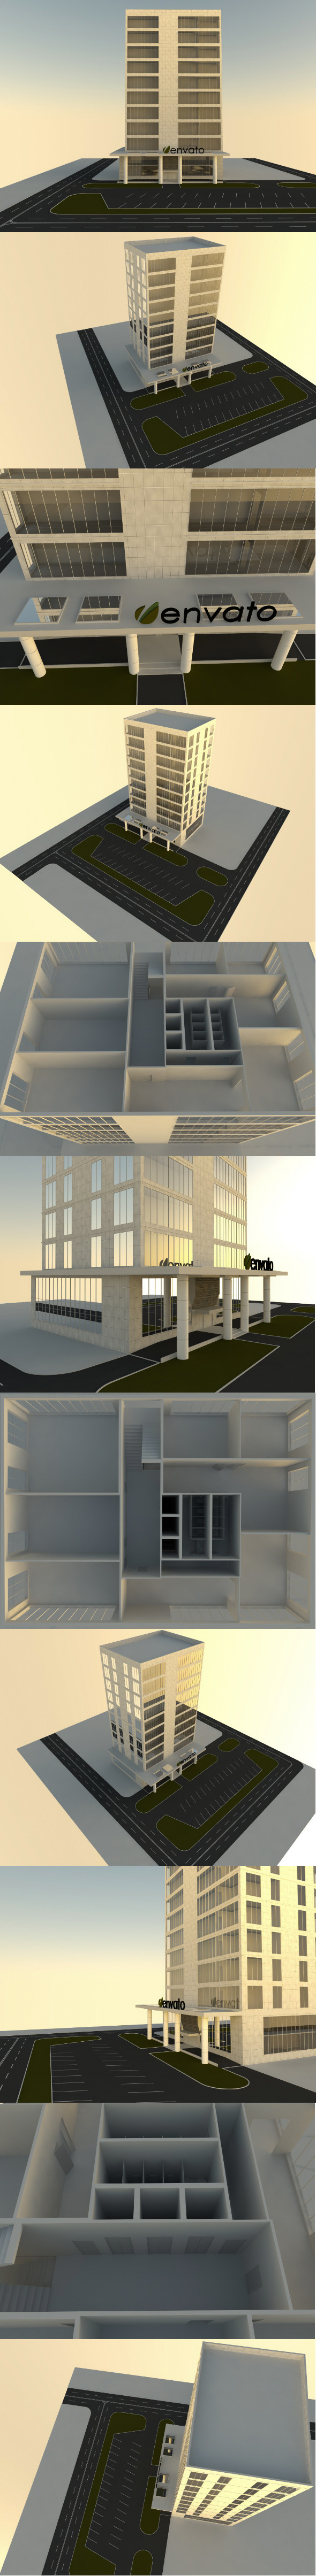 Office Building - 3DOcean Item for Sale